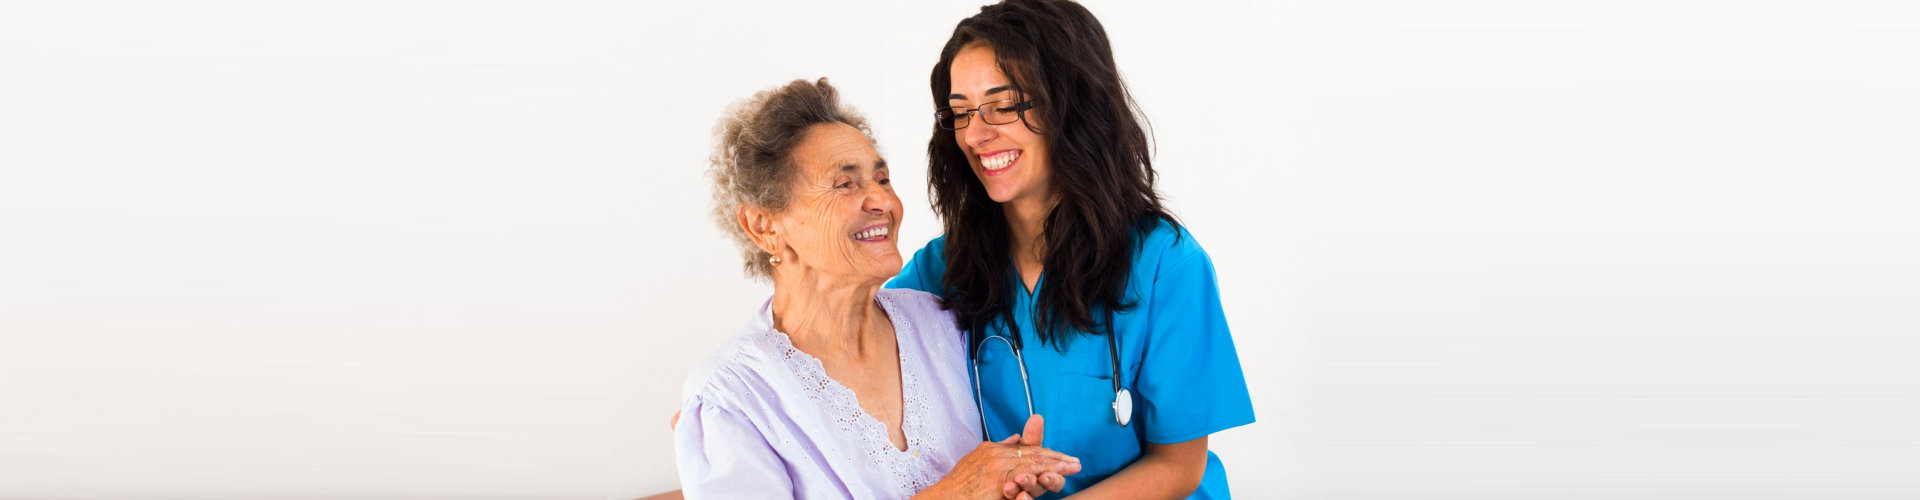 nurse and senior woman are smiling